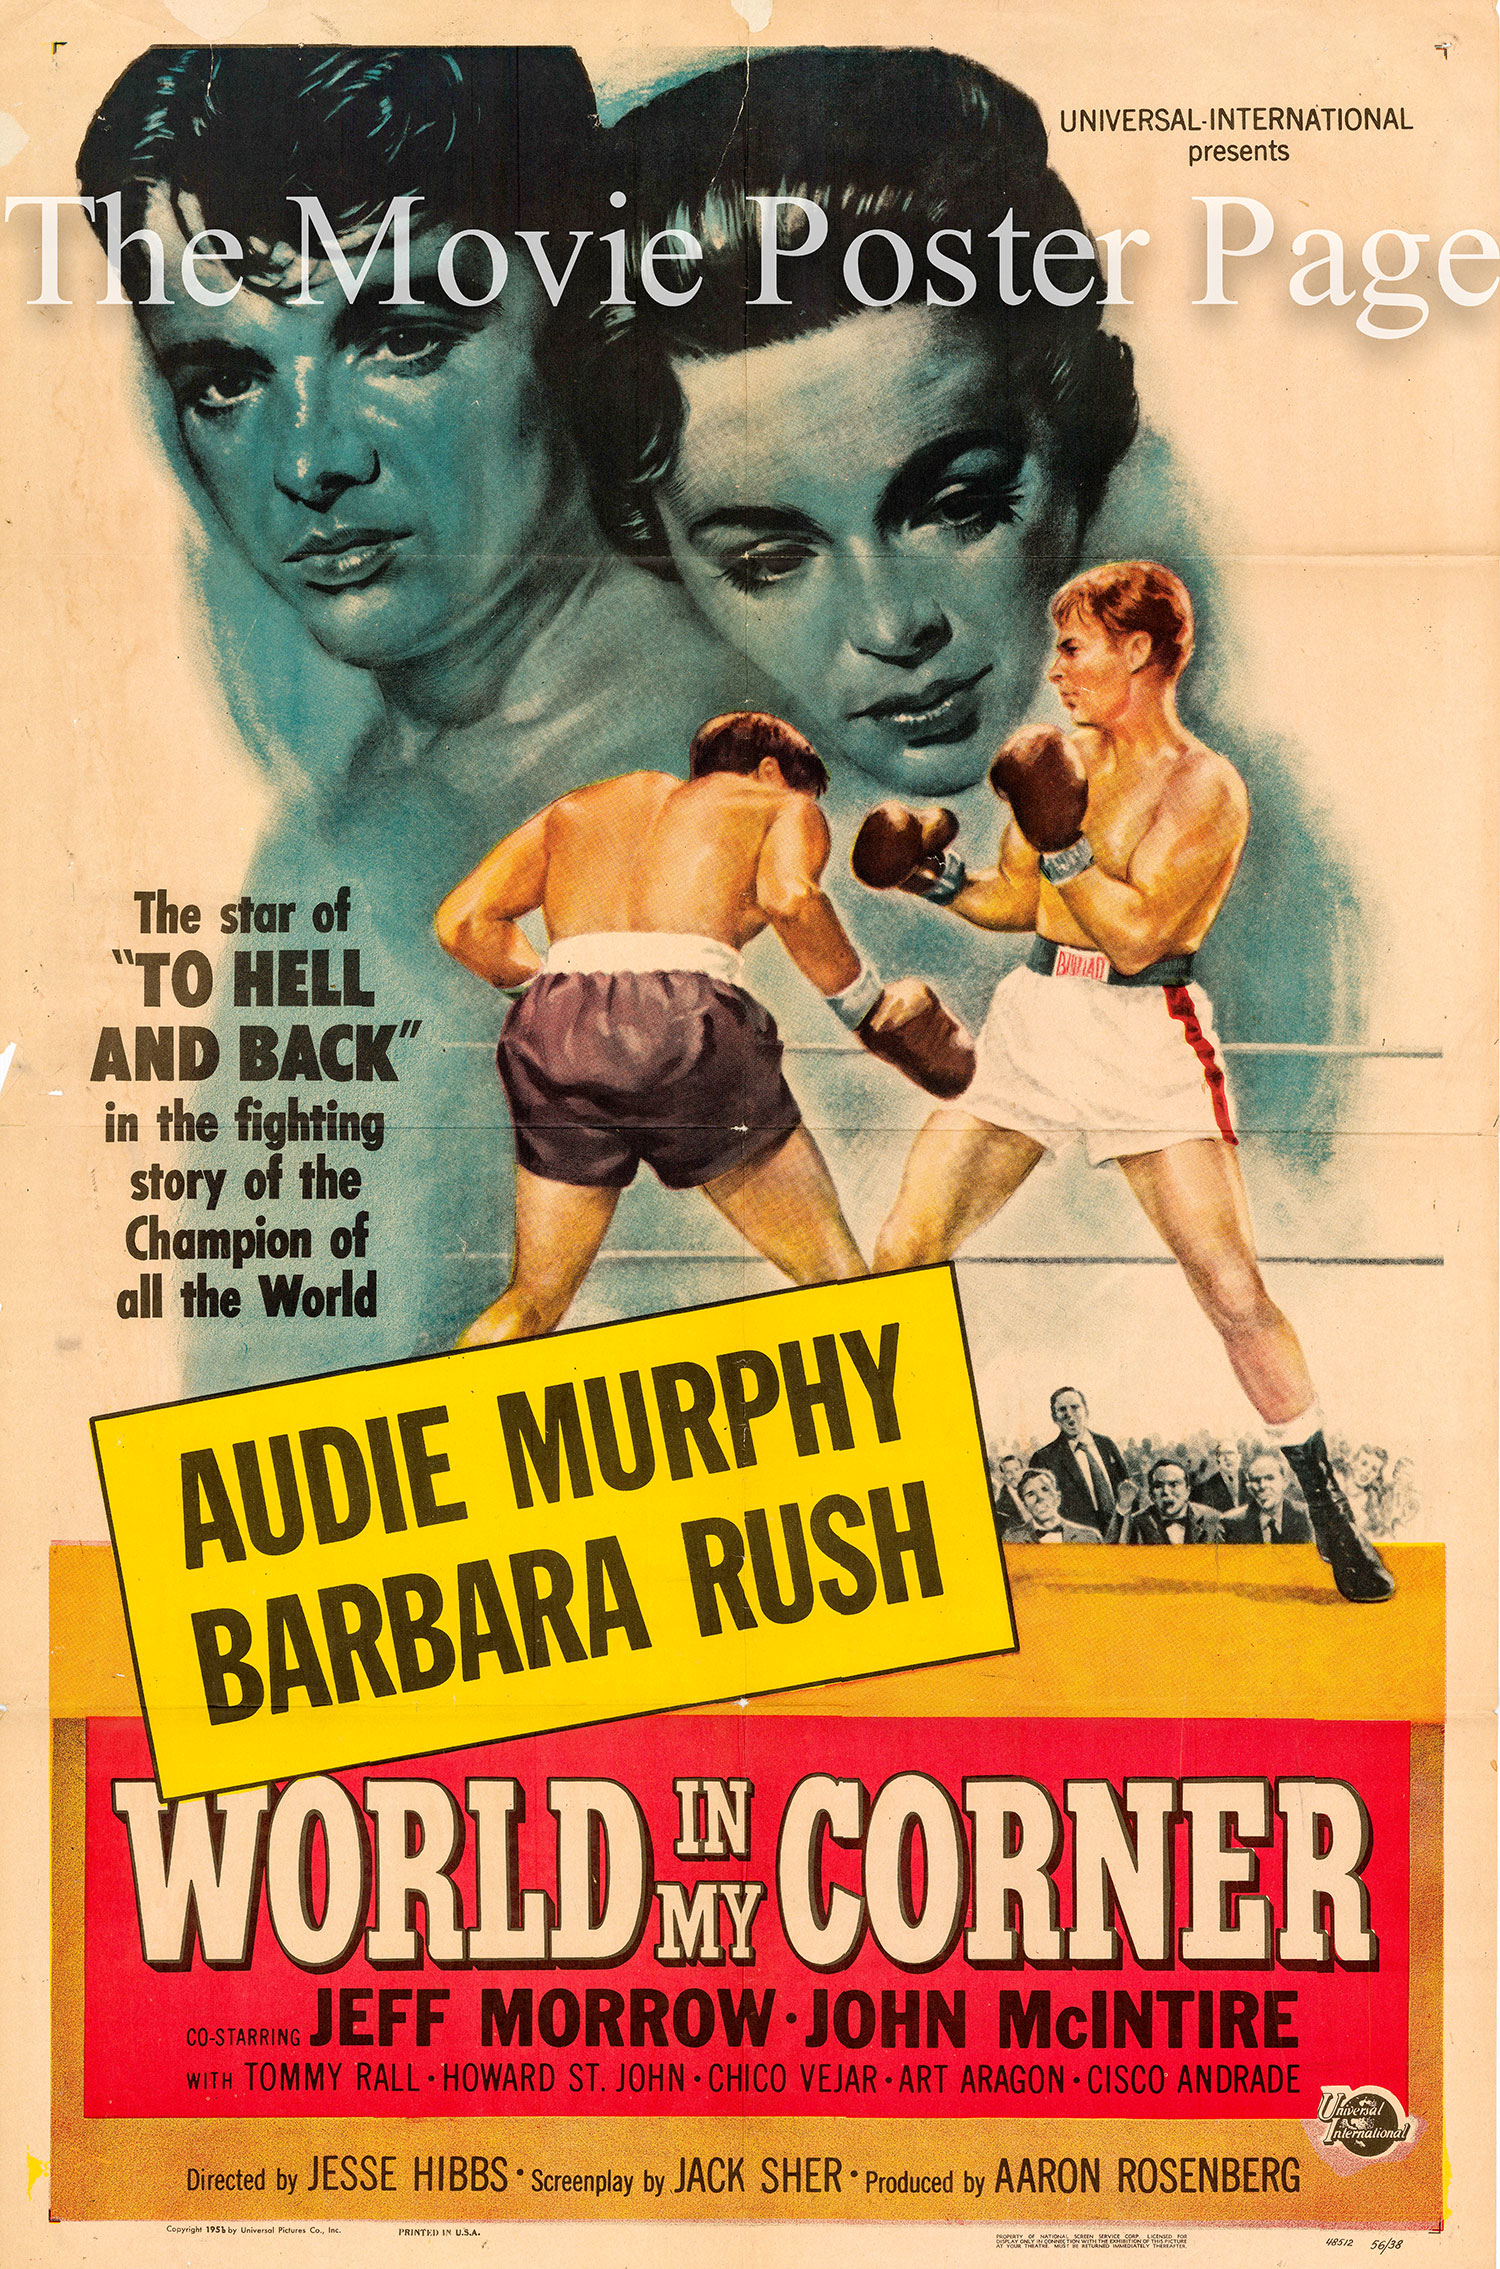 Pictured is a US one-sheet promotional poster for the 1956 Jesse Hibbs film World in My Corner starring Audie Murphy.